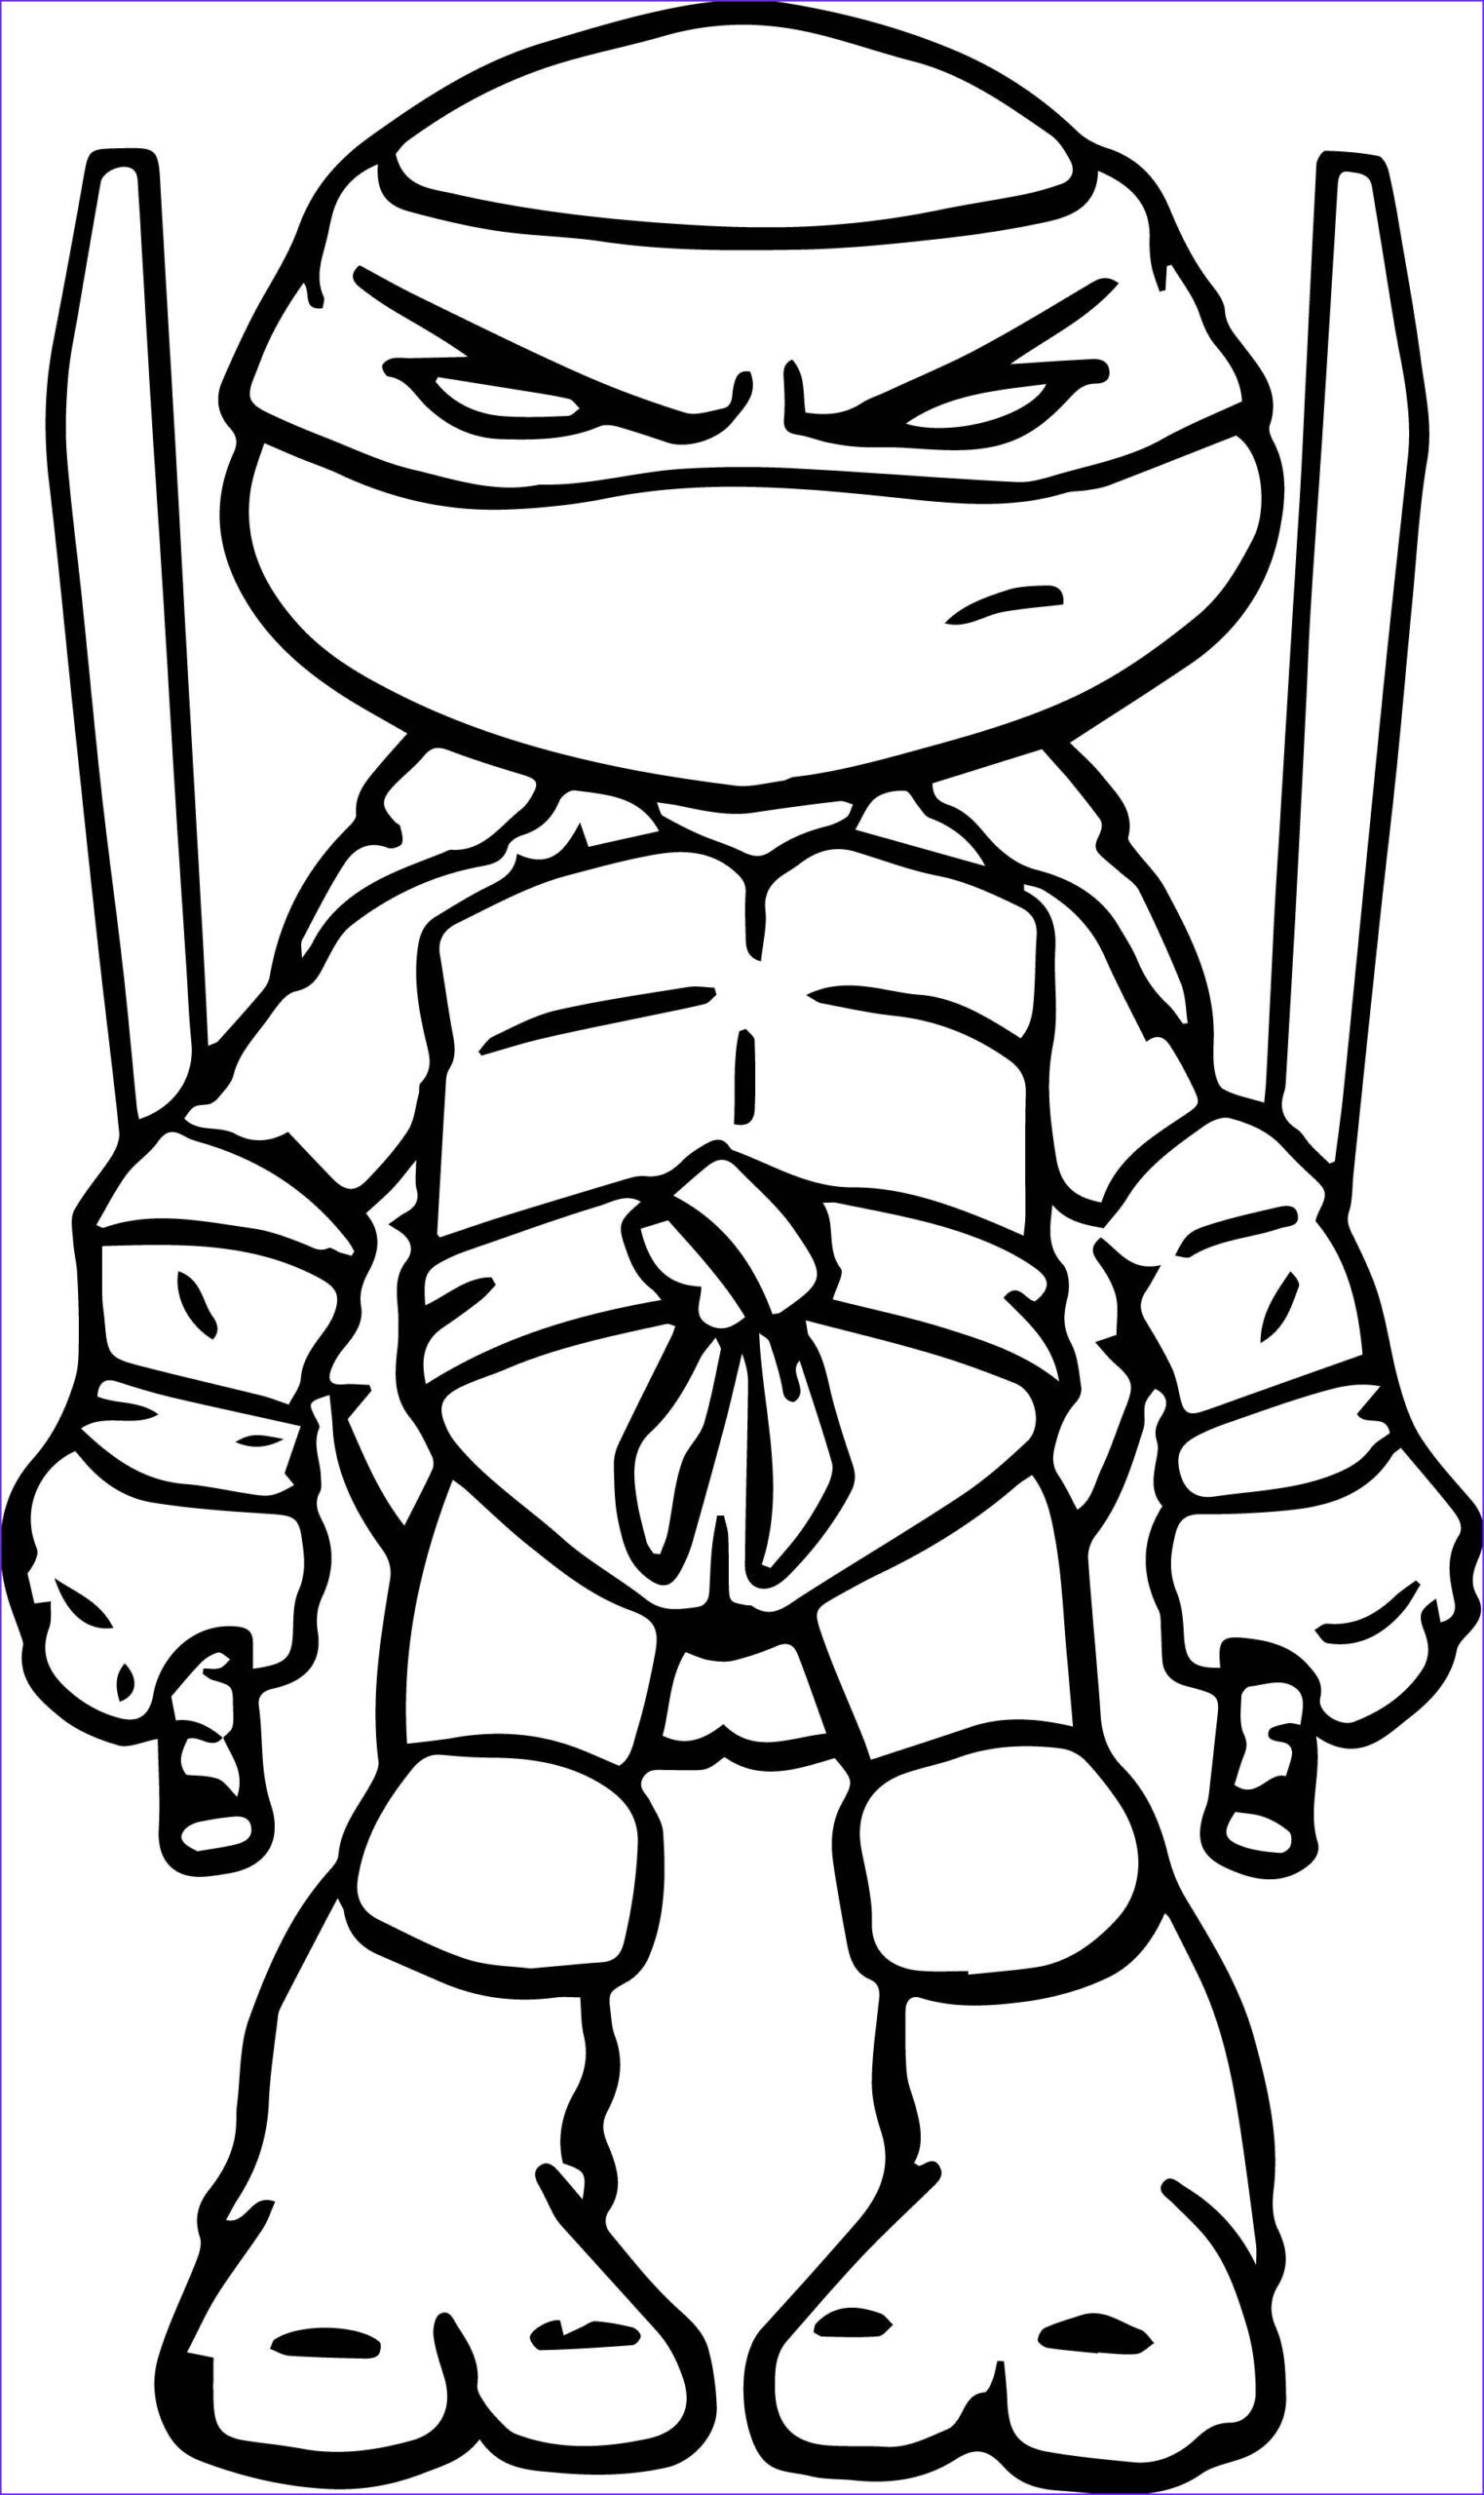 Ninja Turtle Coloring Pages Luxury Photos Ninja Turtles Art Coloring Page Tmnt Party